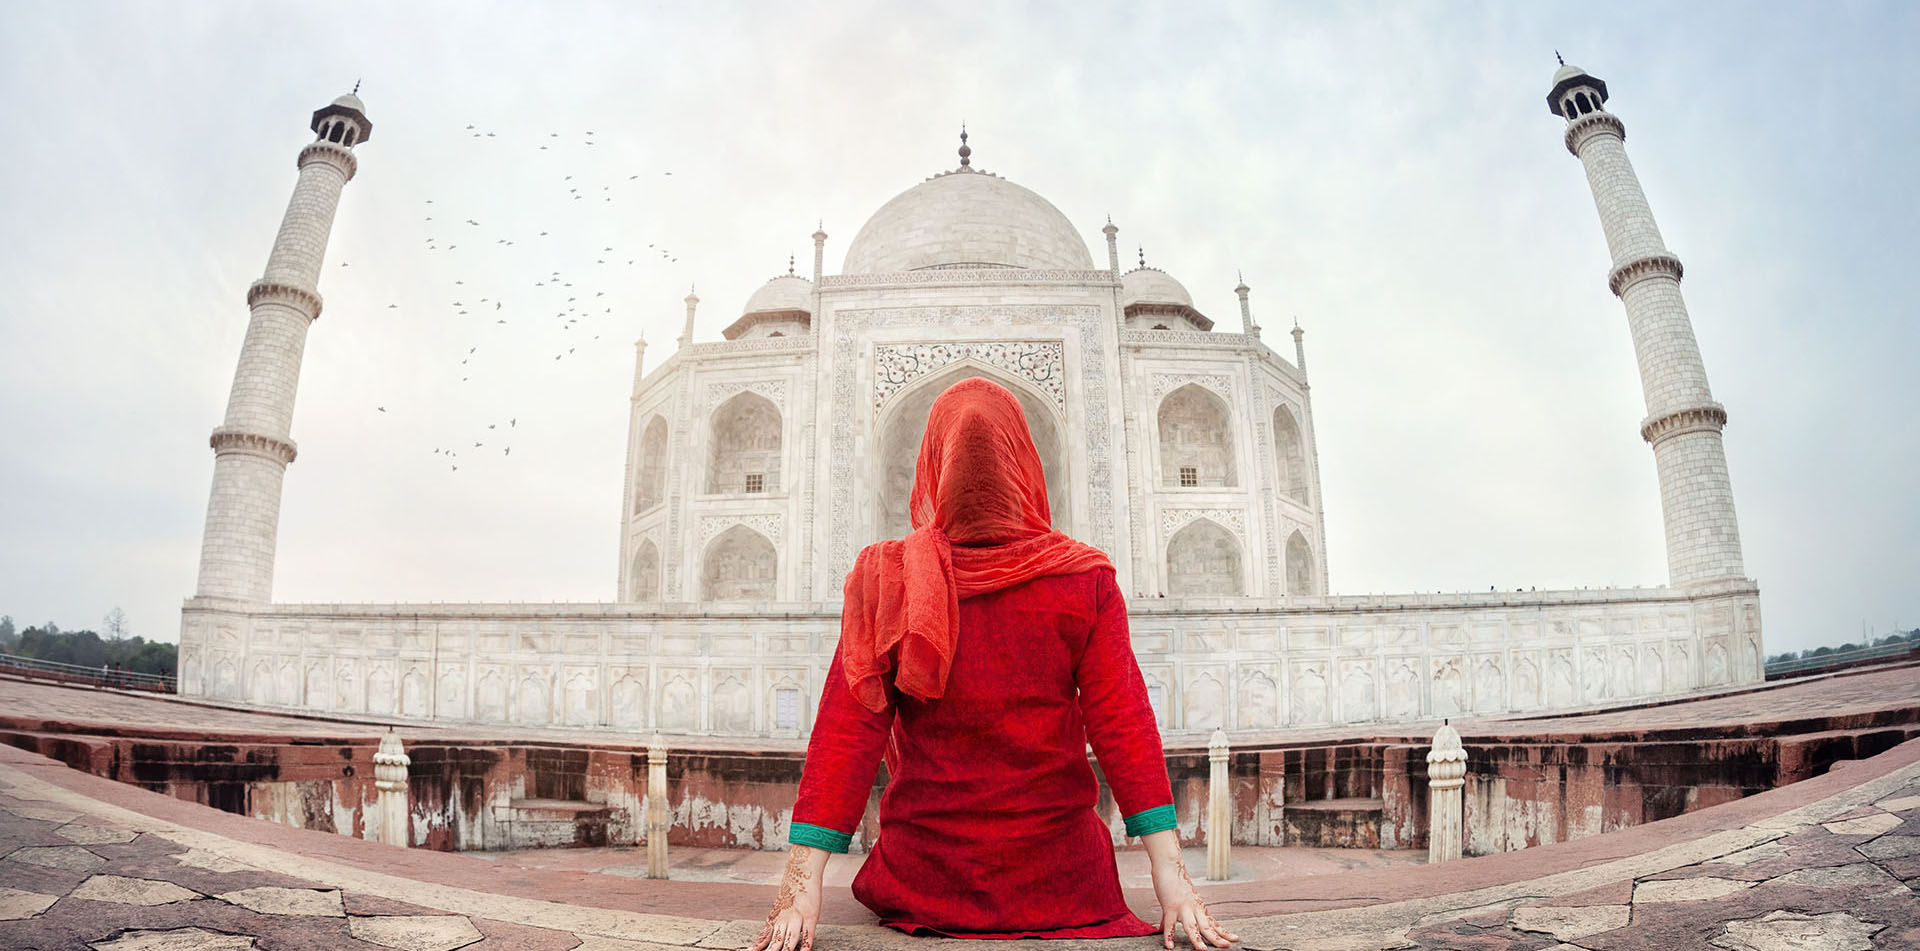 Woman sitting in front of Taj Mahal, India